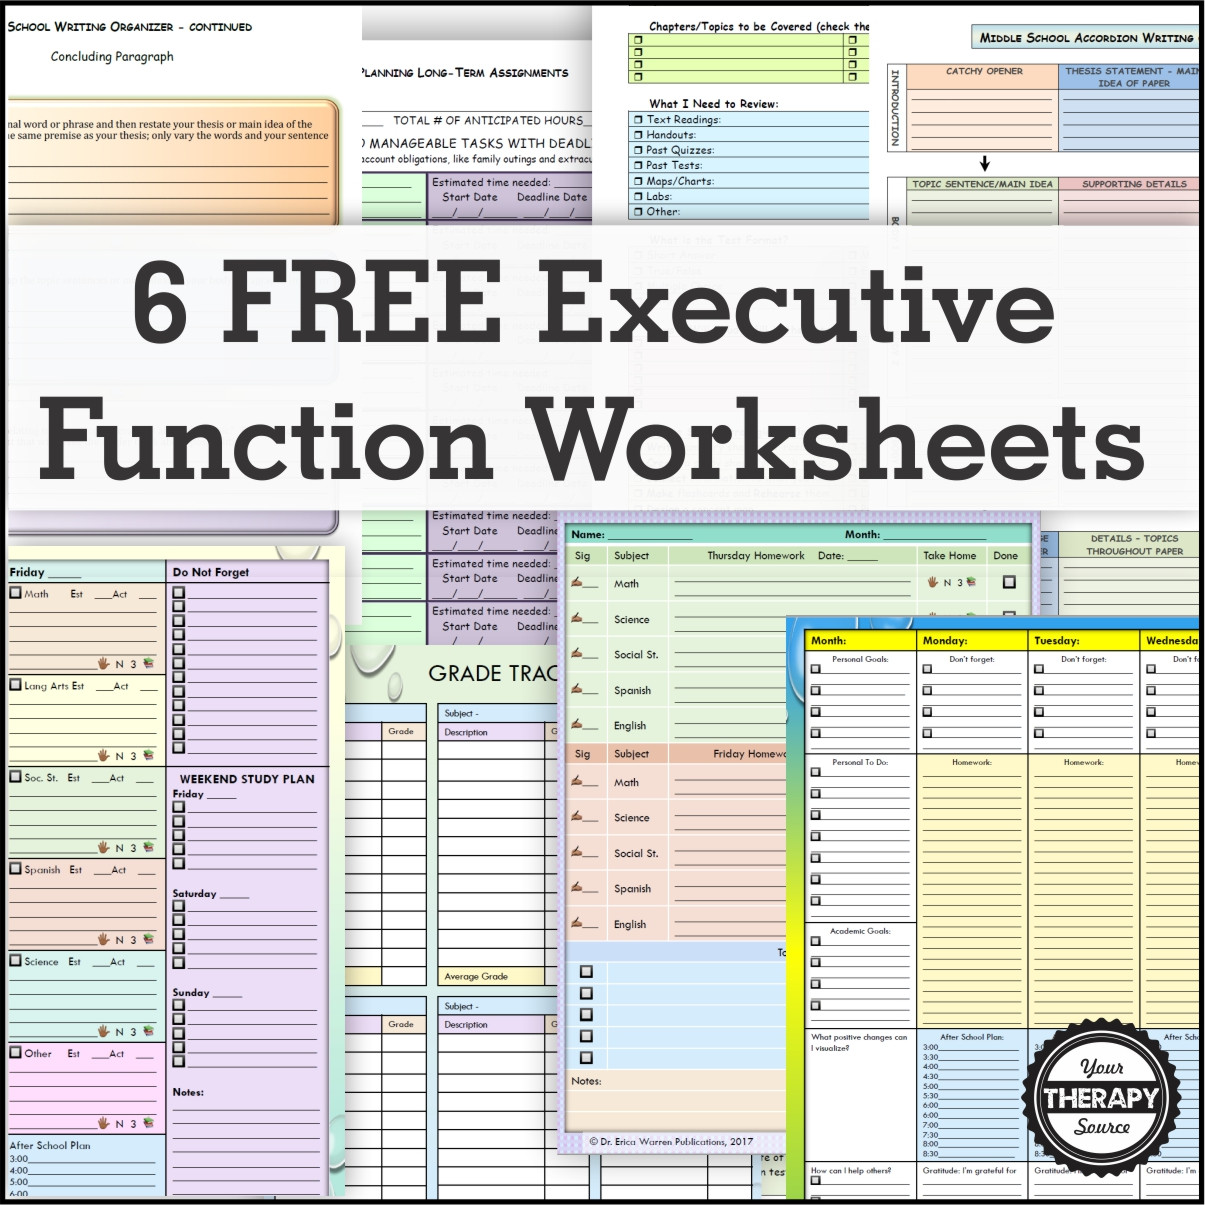 Study Skills Worksheets Middle School 6 Free Executive Functioning Activity Worksheets Your